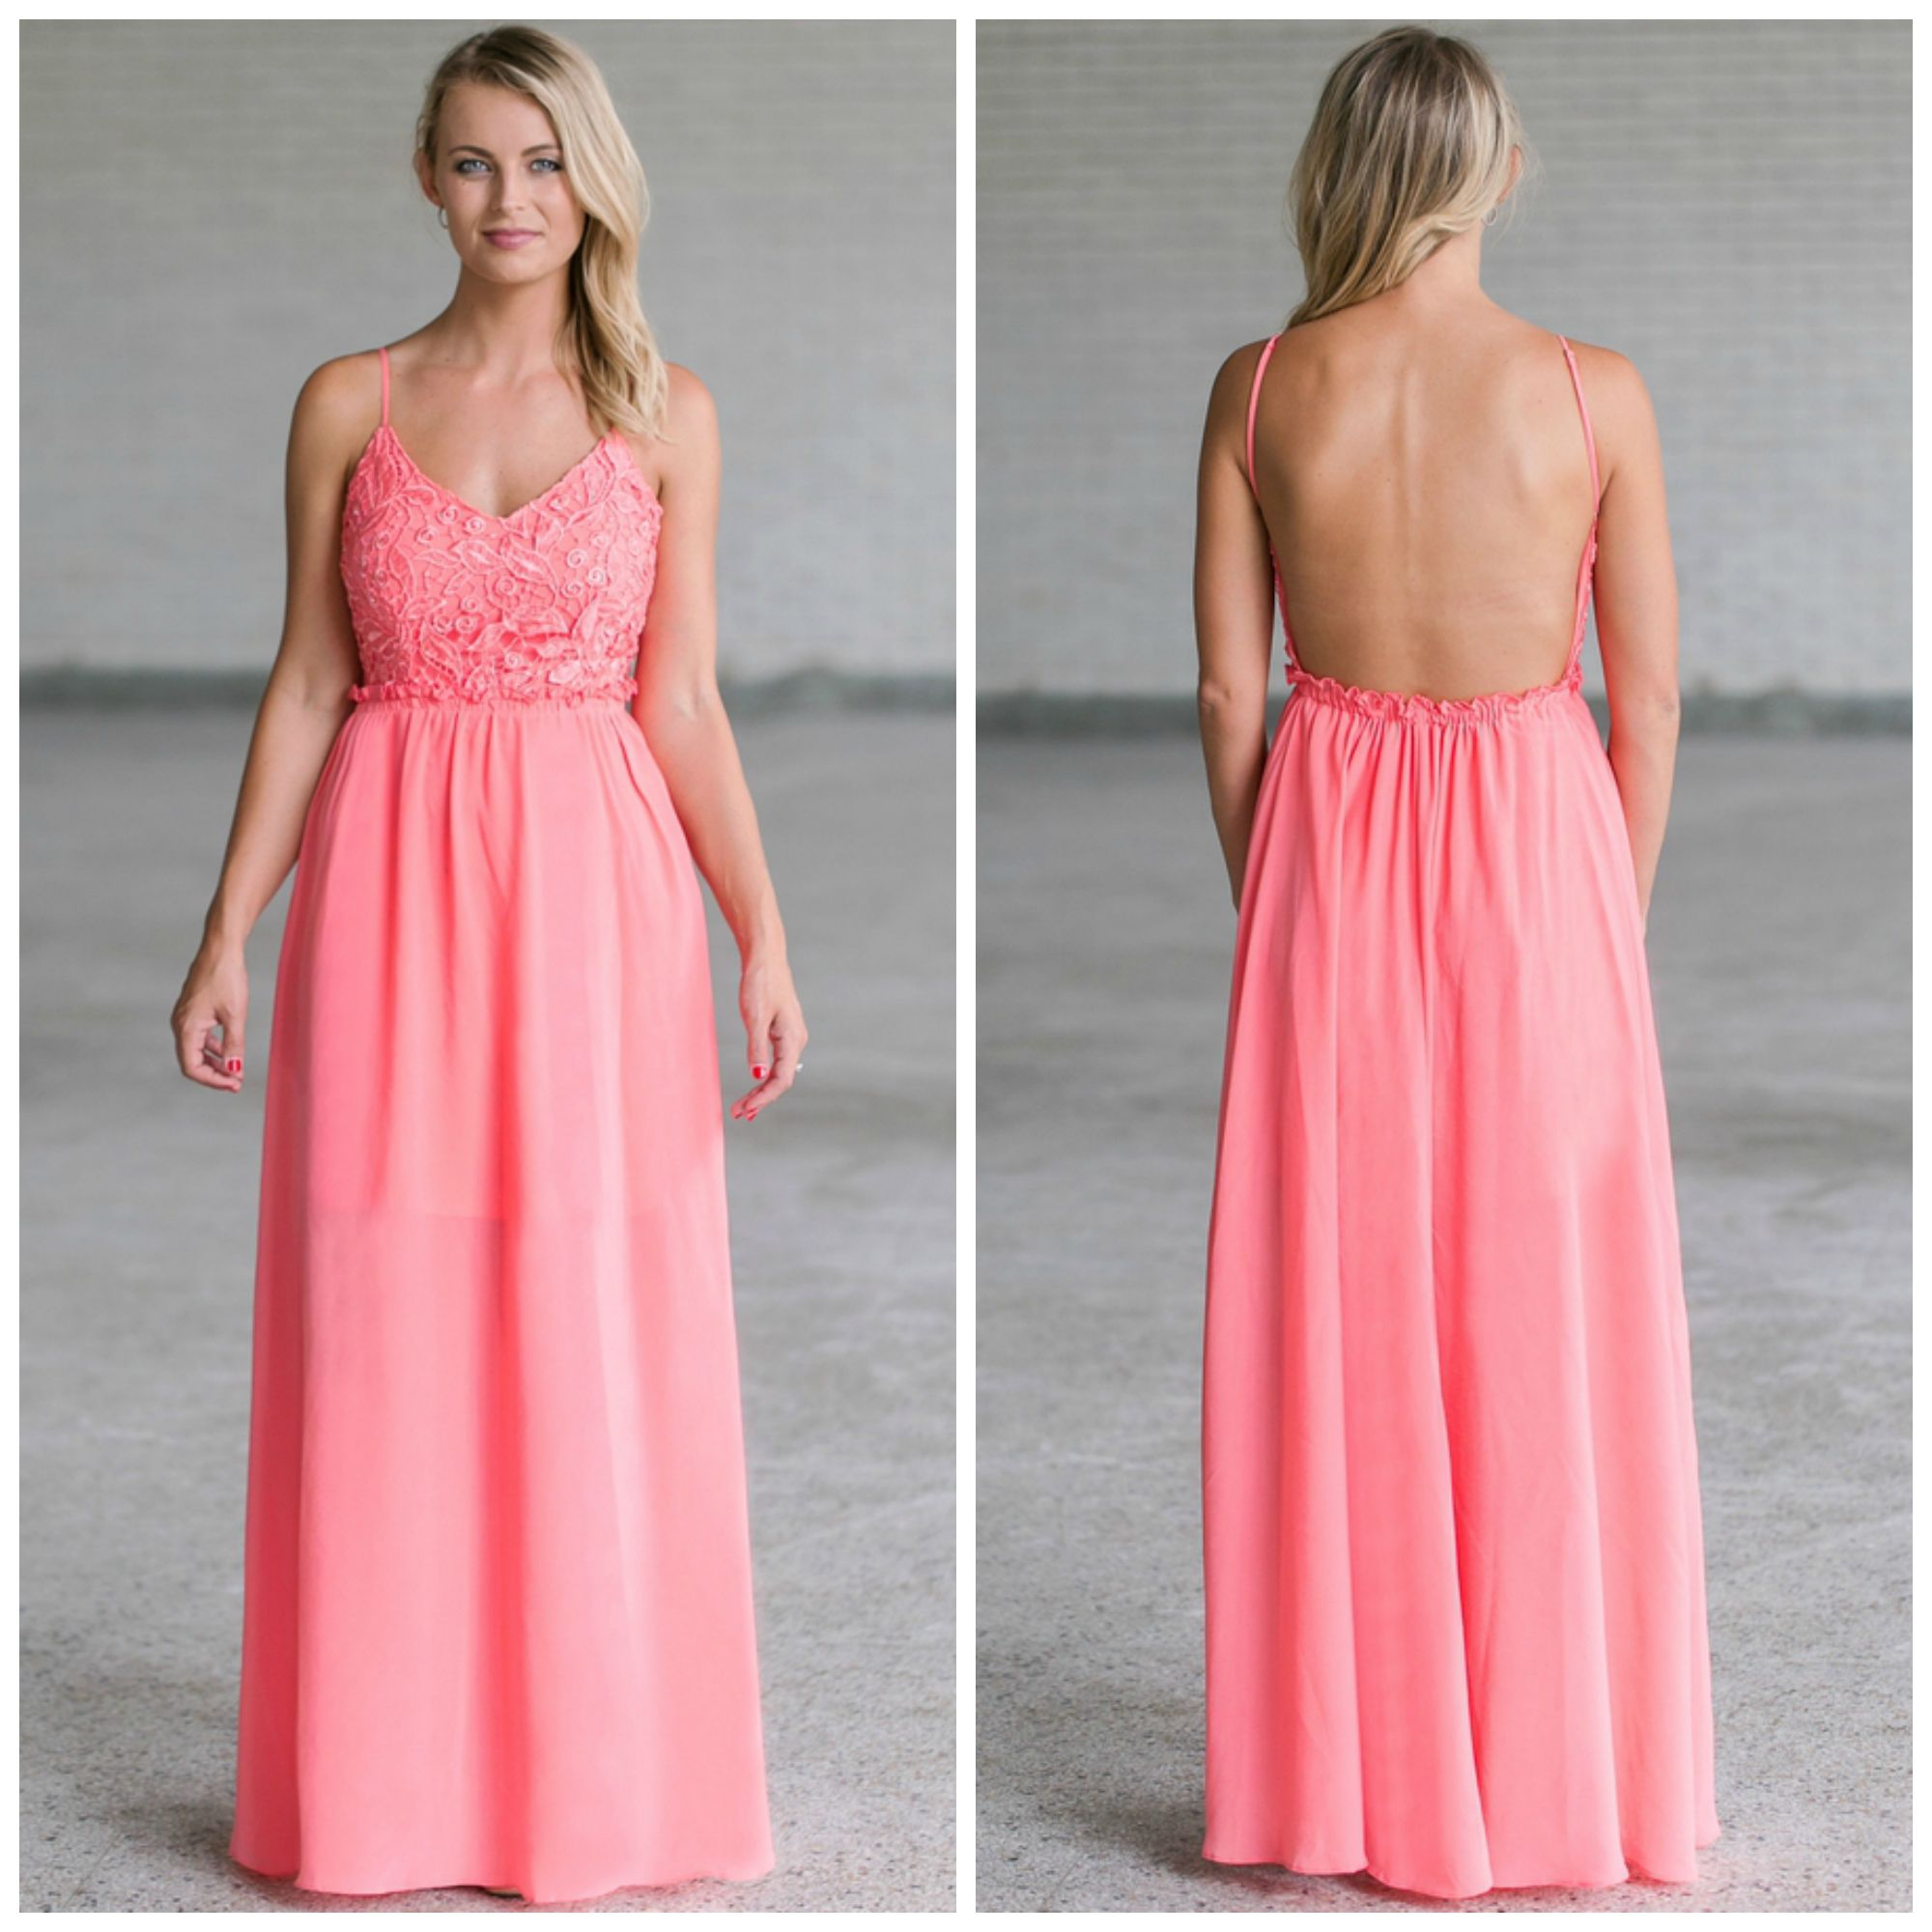 This pink maxi dress is perfect for any formal event! http://ss1.us ...